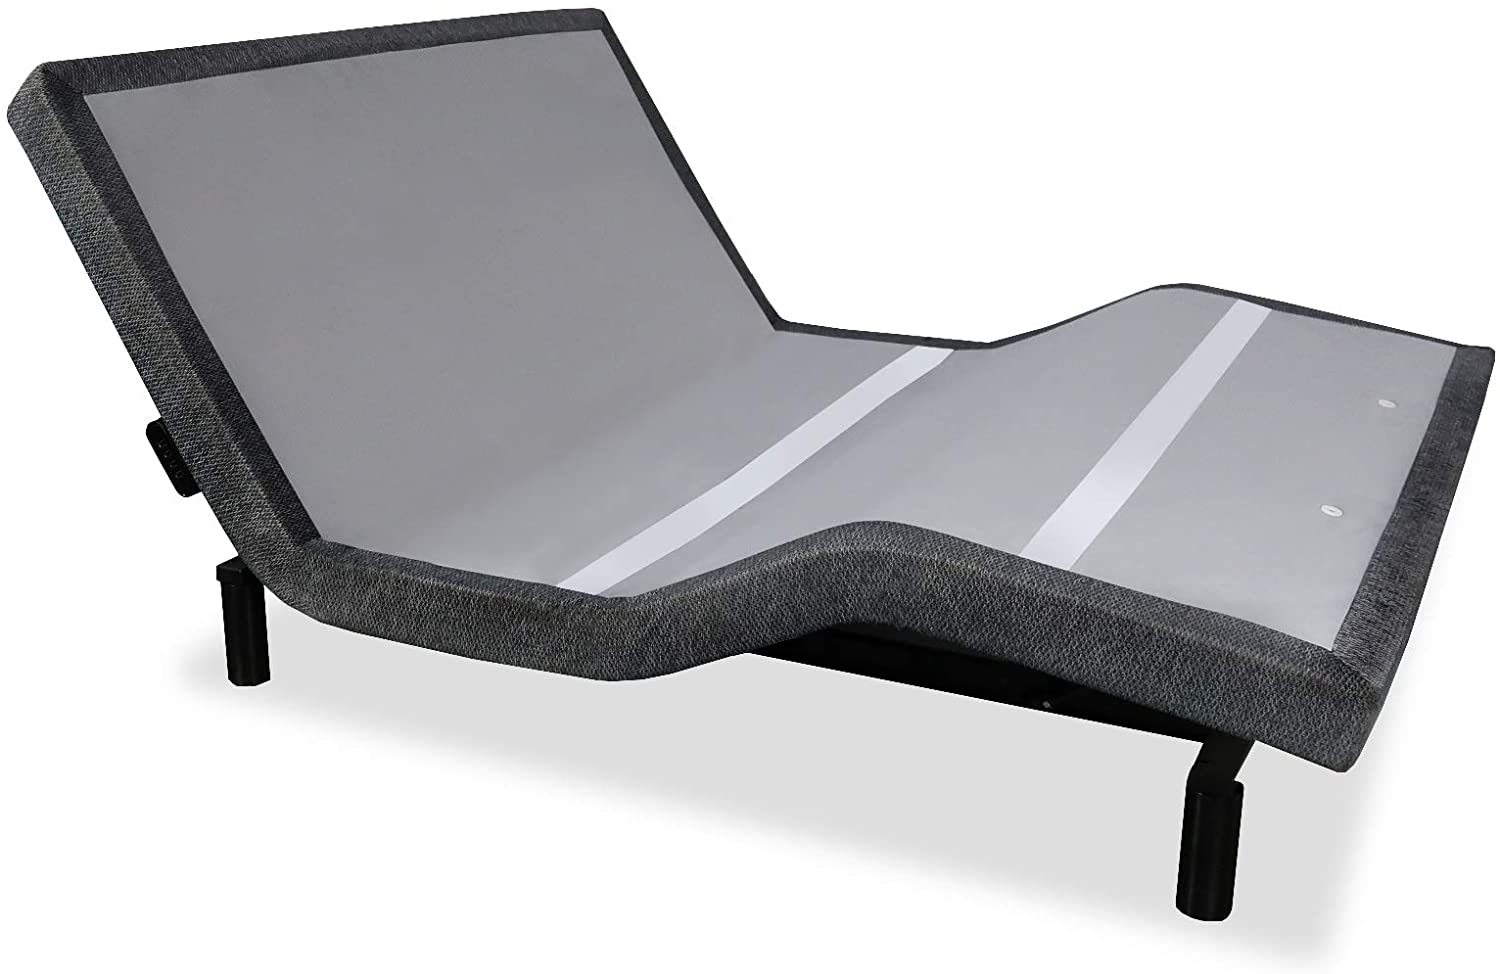 iDealBed iEscape - Best Adjustable Beds for Back Pain